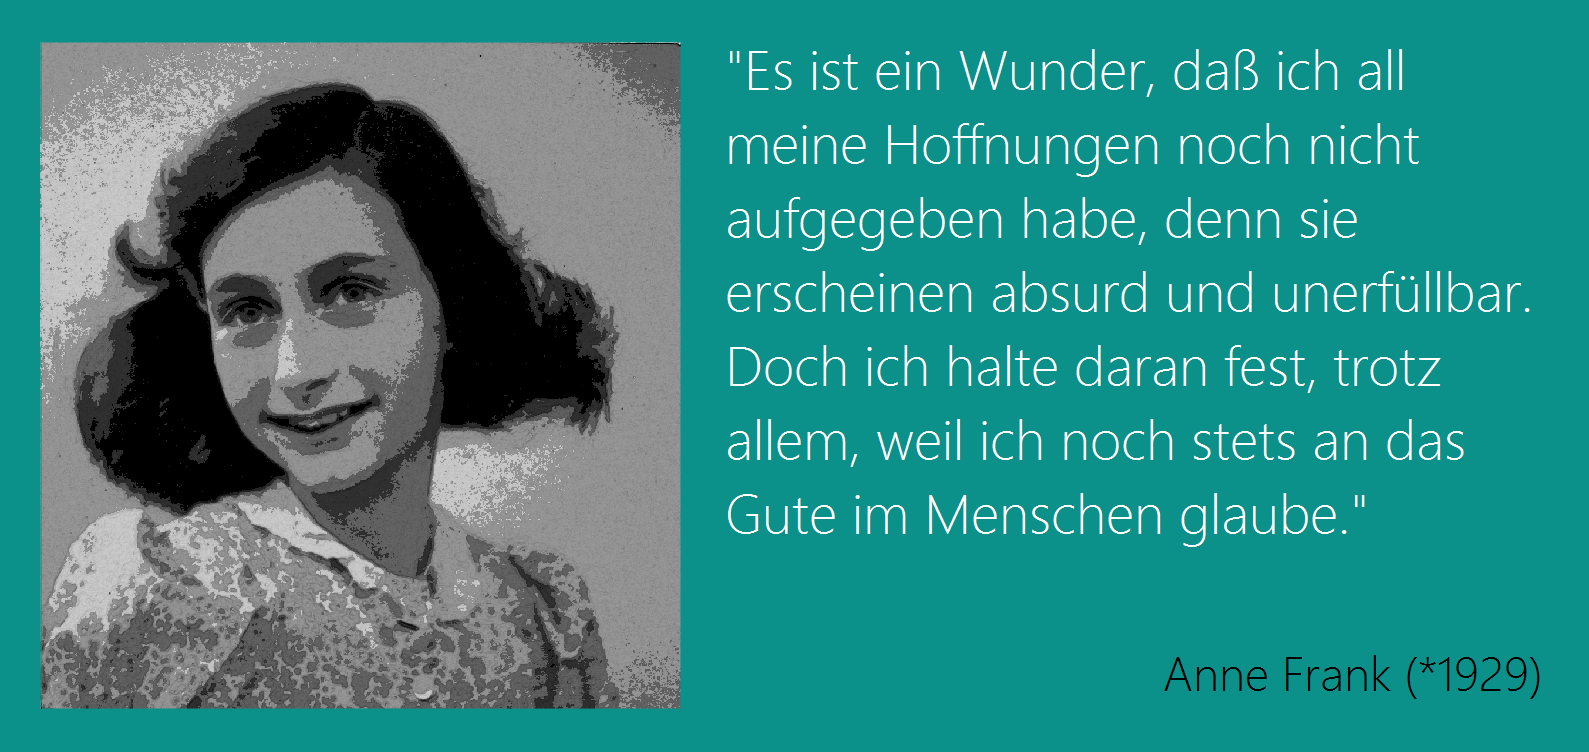 Anne Frank - 12.06.1929.png